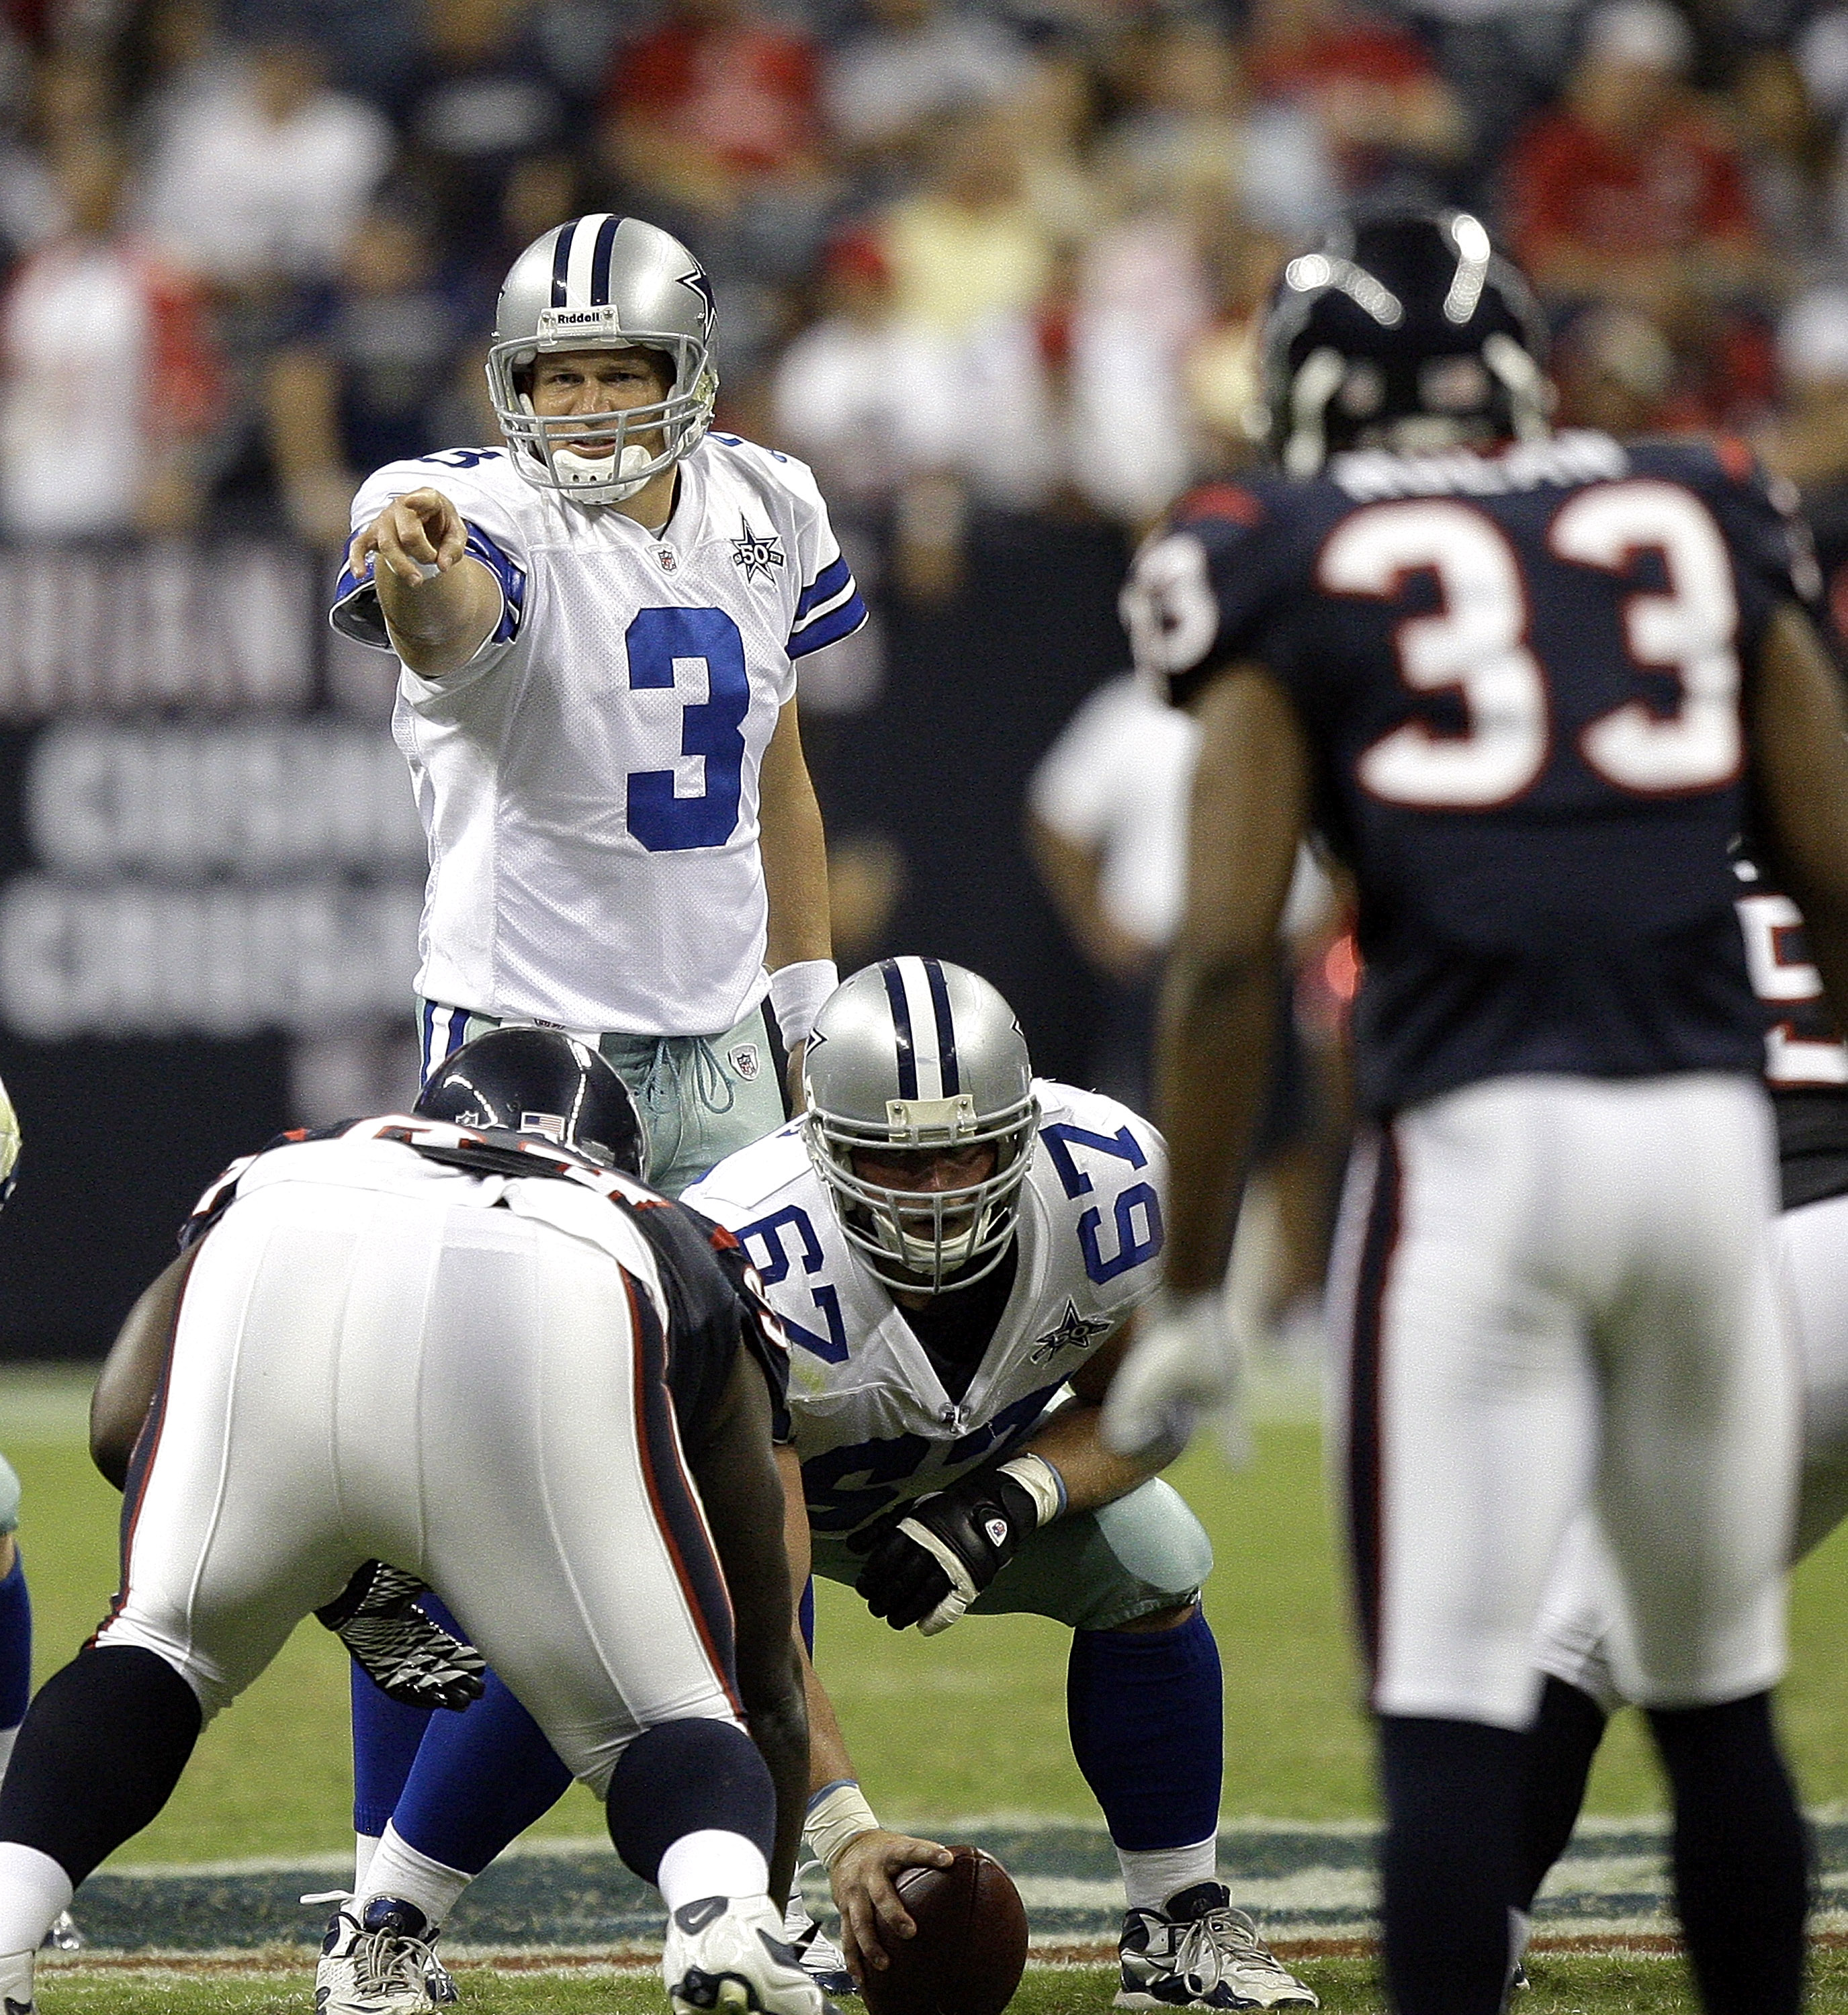 HOUSTON - AUGUST 28: Quarterback Jon Kitna #3 of the Dallas Cowboys makes an adjustment on the play during a football game against the Houston Texans as he waits for center Phil Costa #67 to hike the ball at Reliant Stadium on August 28, 2010 in Houston,